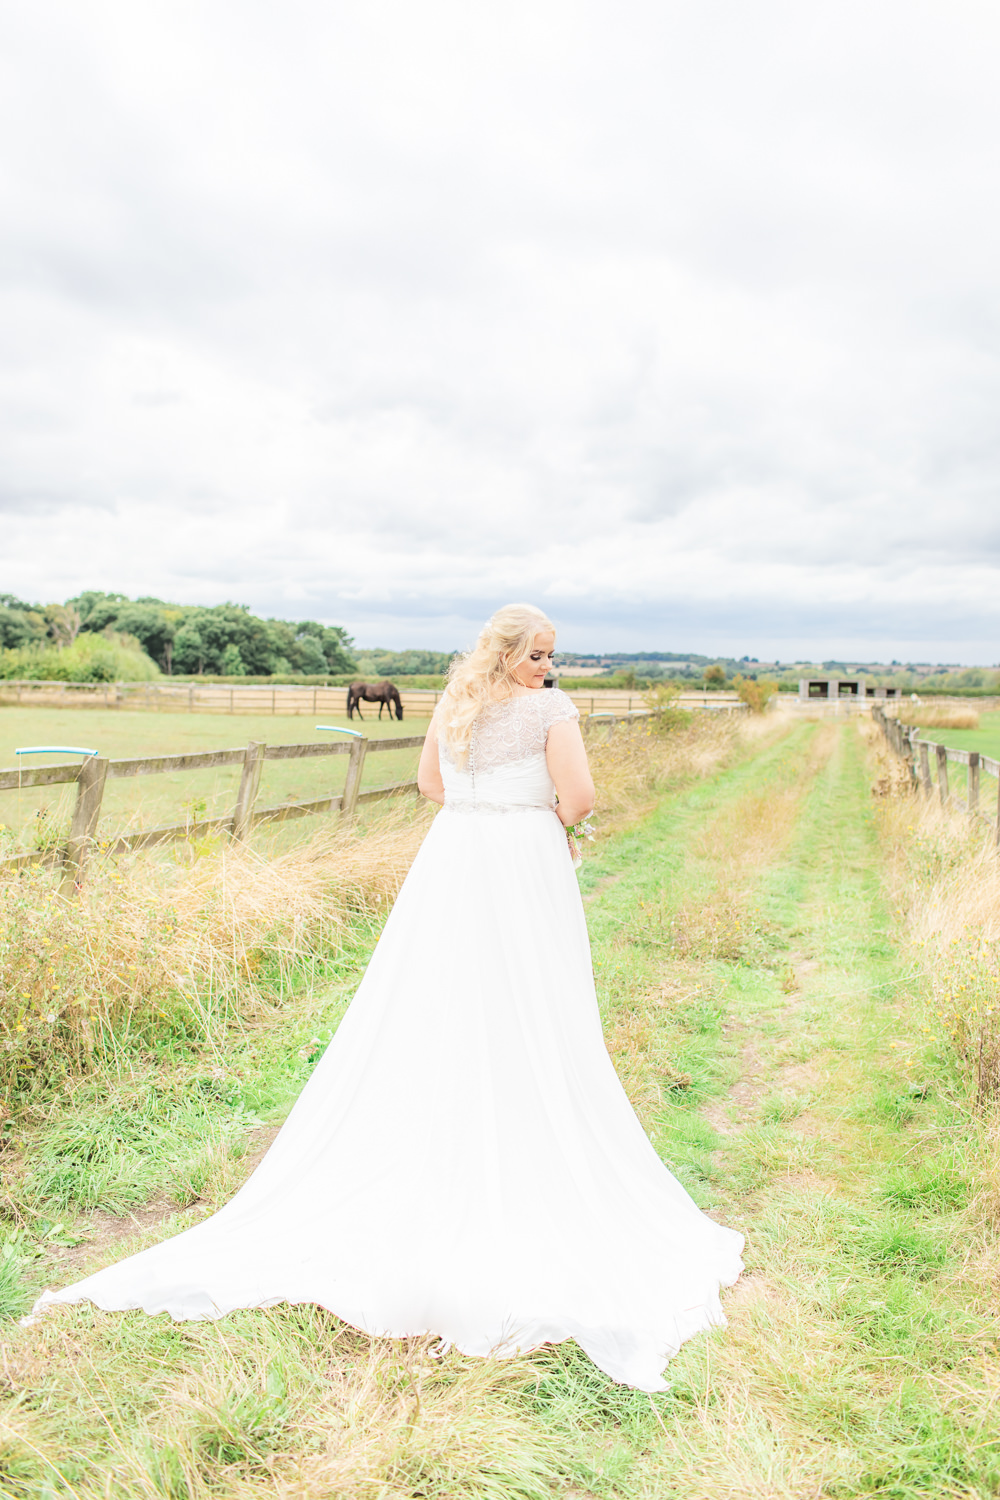 Bride Bridal Short Sleeve Lace V Neck Dress Gown Bedfordshire Tipi Wedding Natalie Stevenson Photography